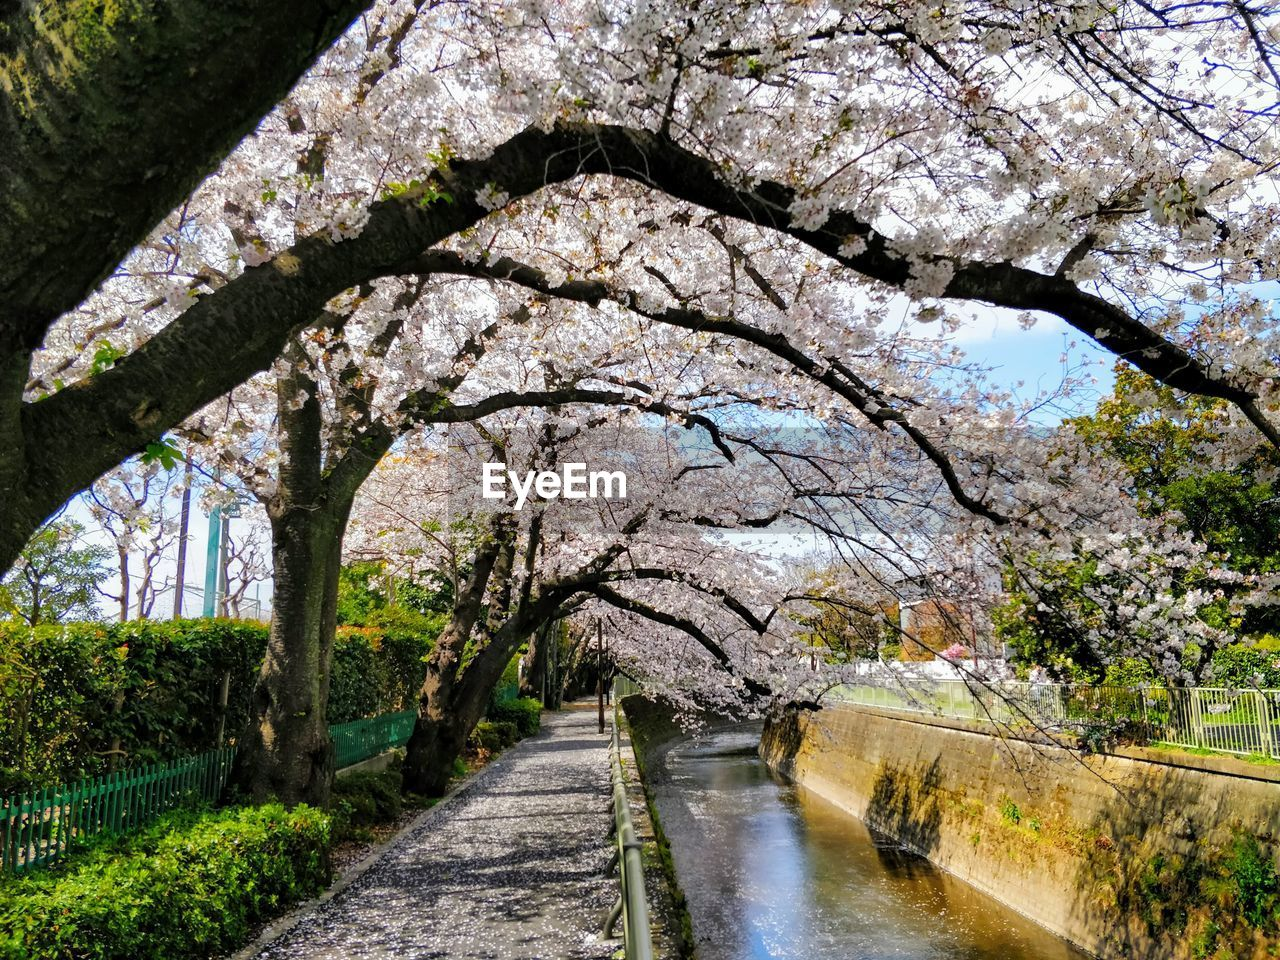 View of canal amidst cherry blossom trees in park